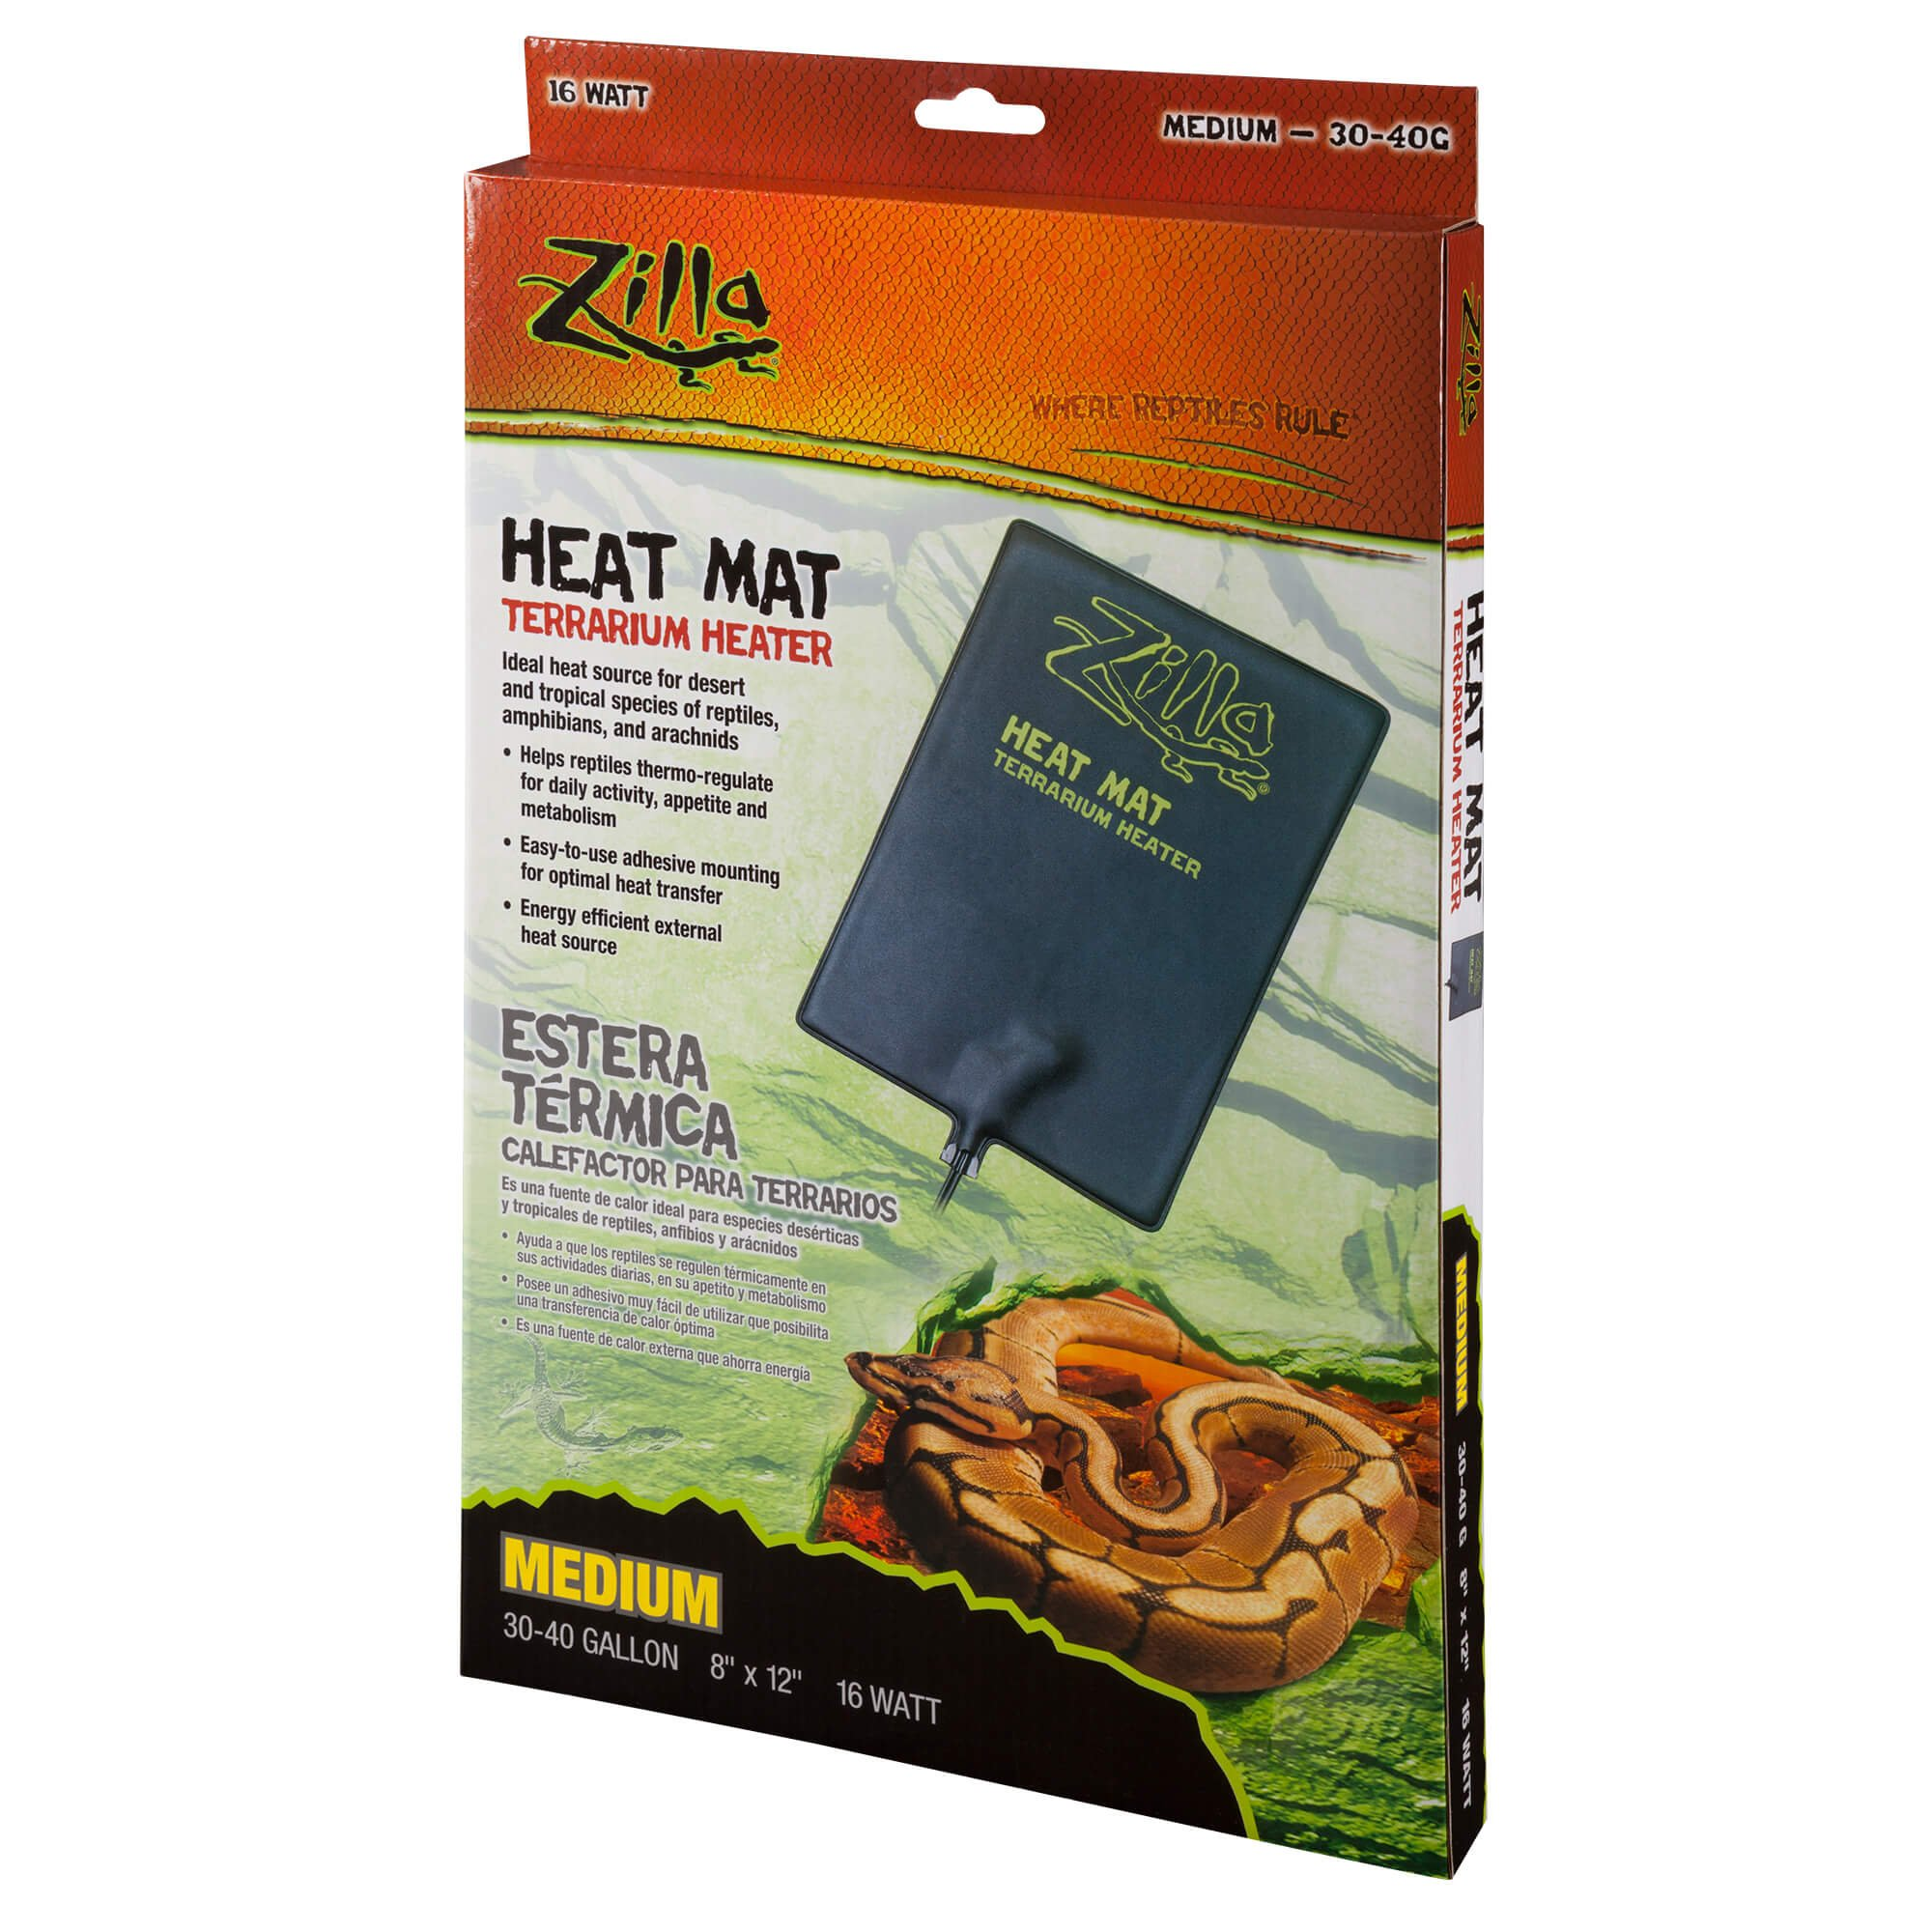 Zilla Under Tank Reptile Heaters, Medium